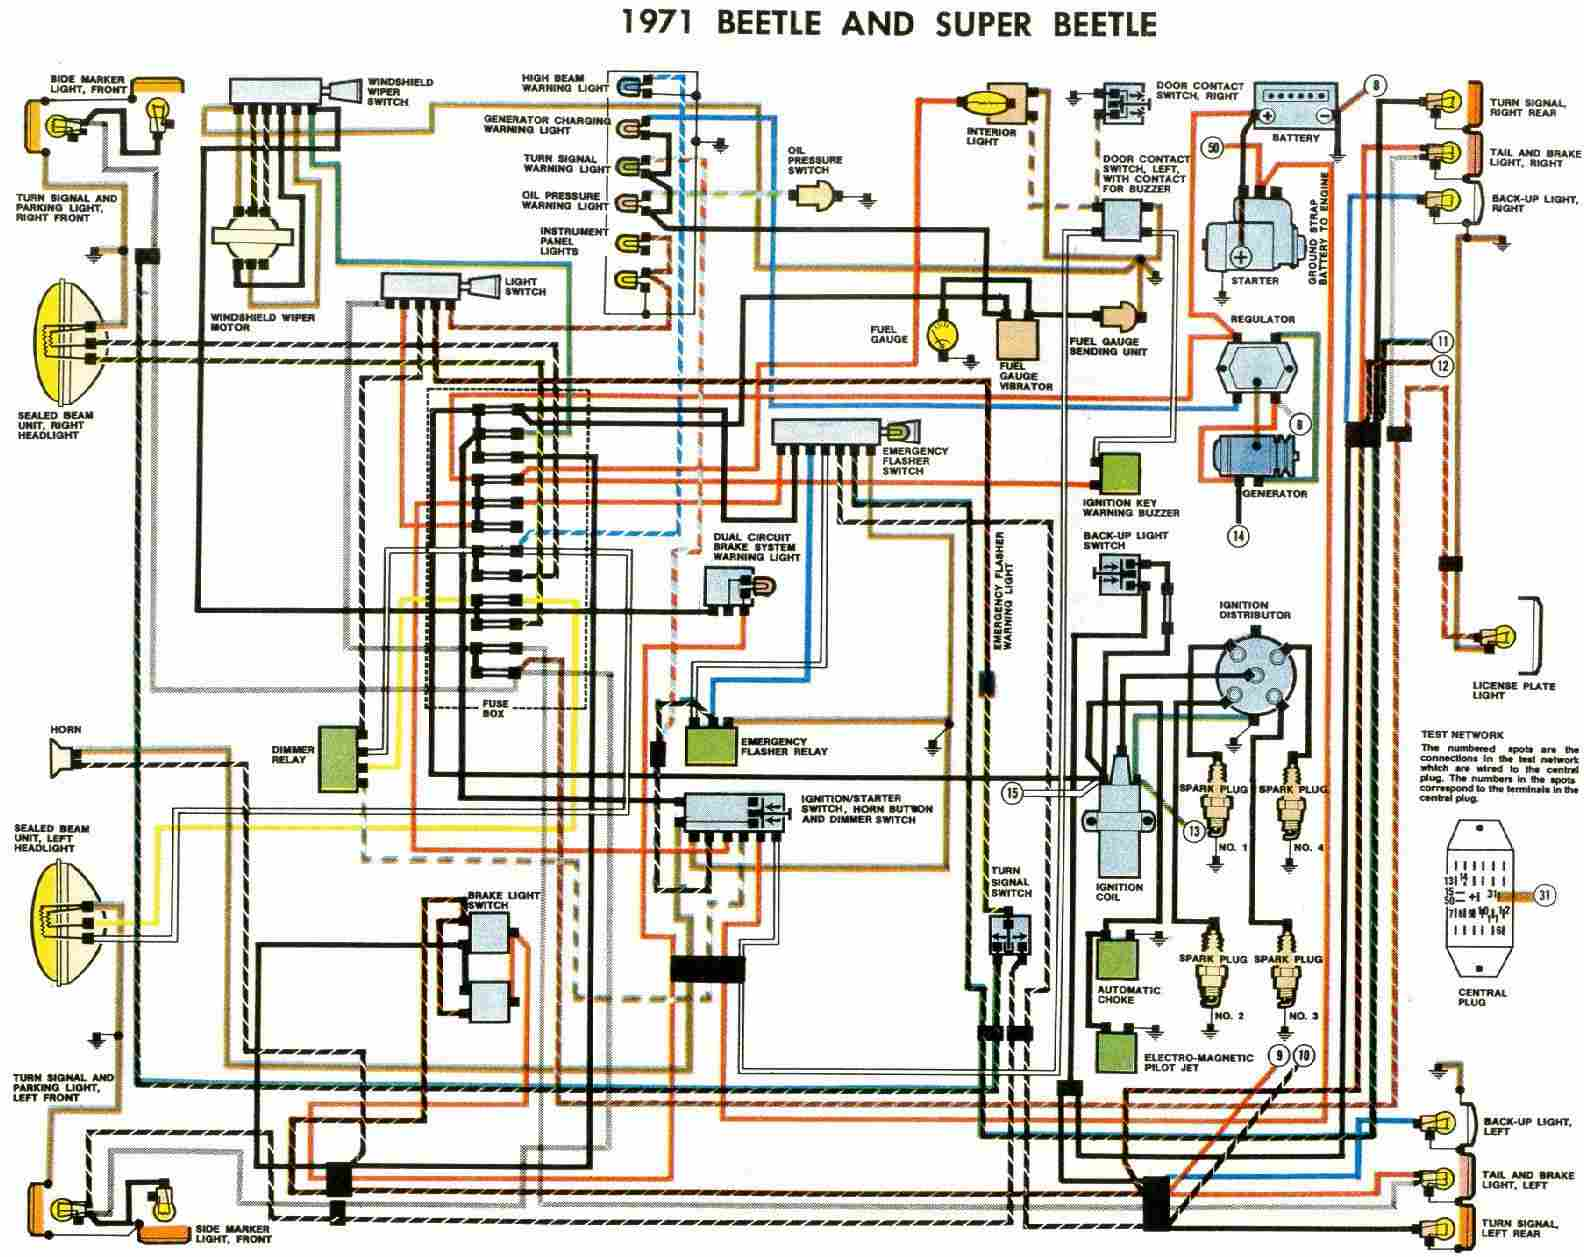 medium resolution of vw beetle and super beetle 1971 electrical wiring diagram skoda fabia power steering wiring diagram skoda